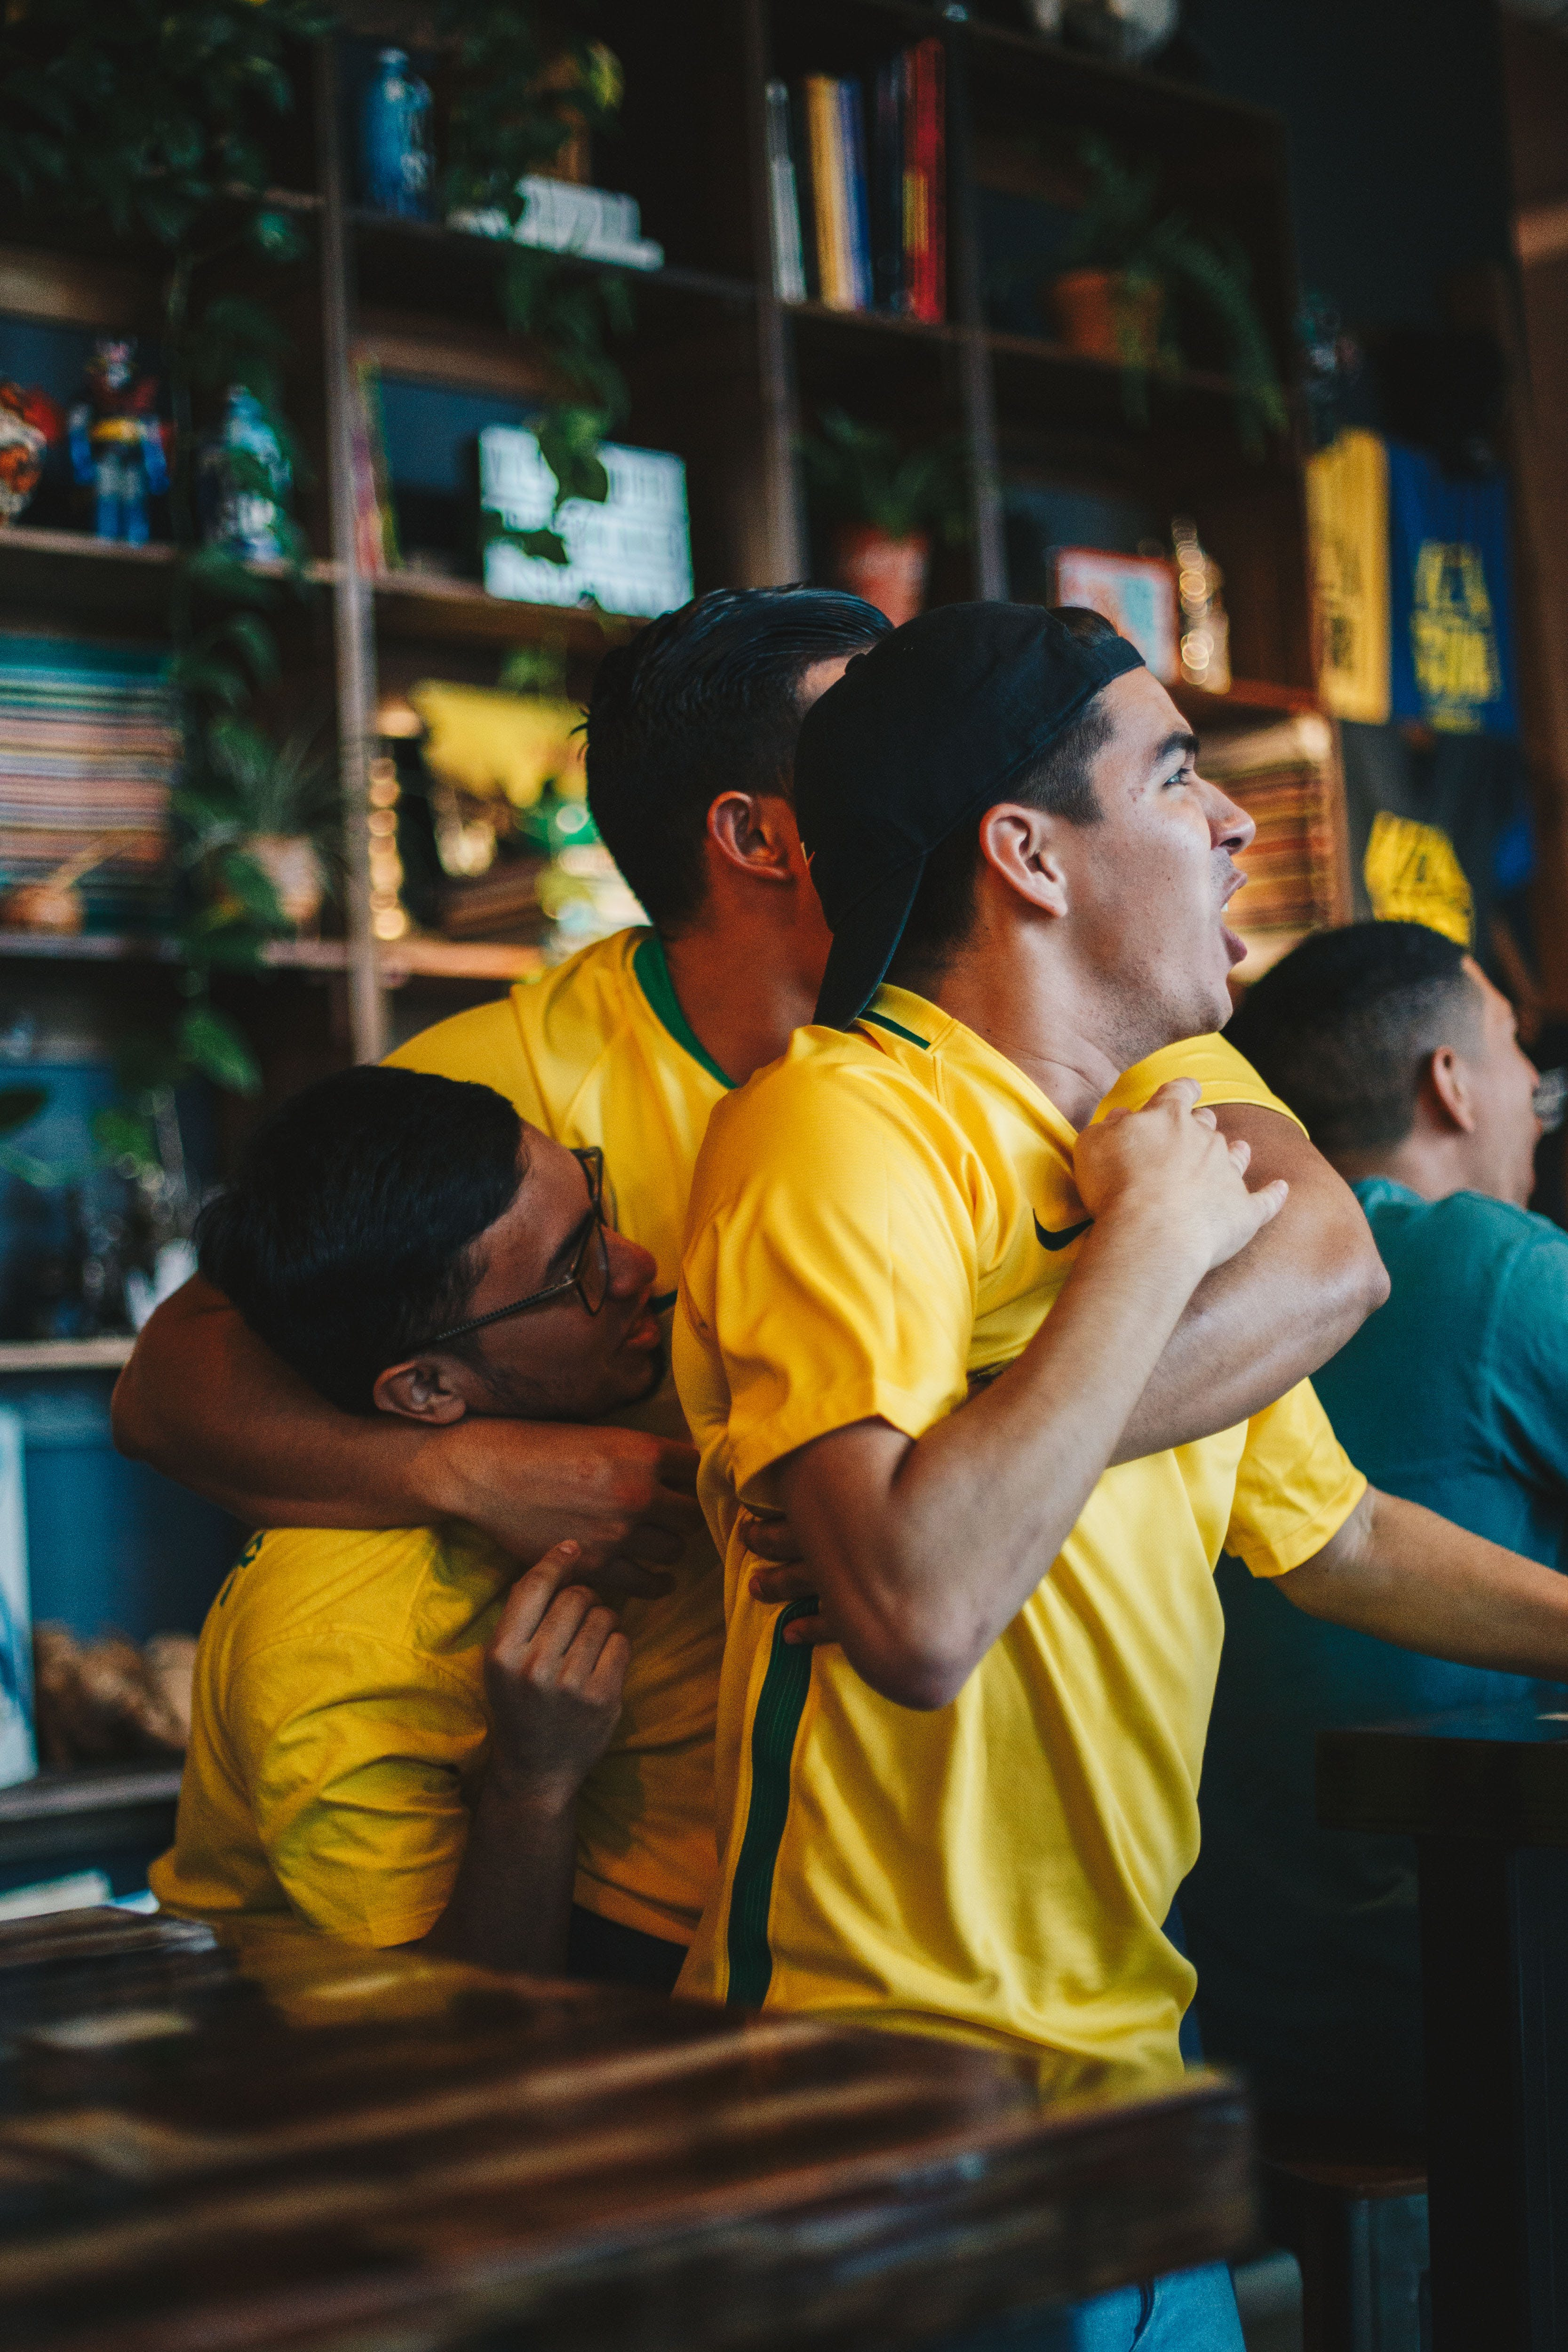 Three Men Wearing Yellow Shirt Embracing Each Other